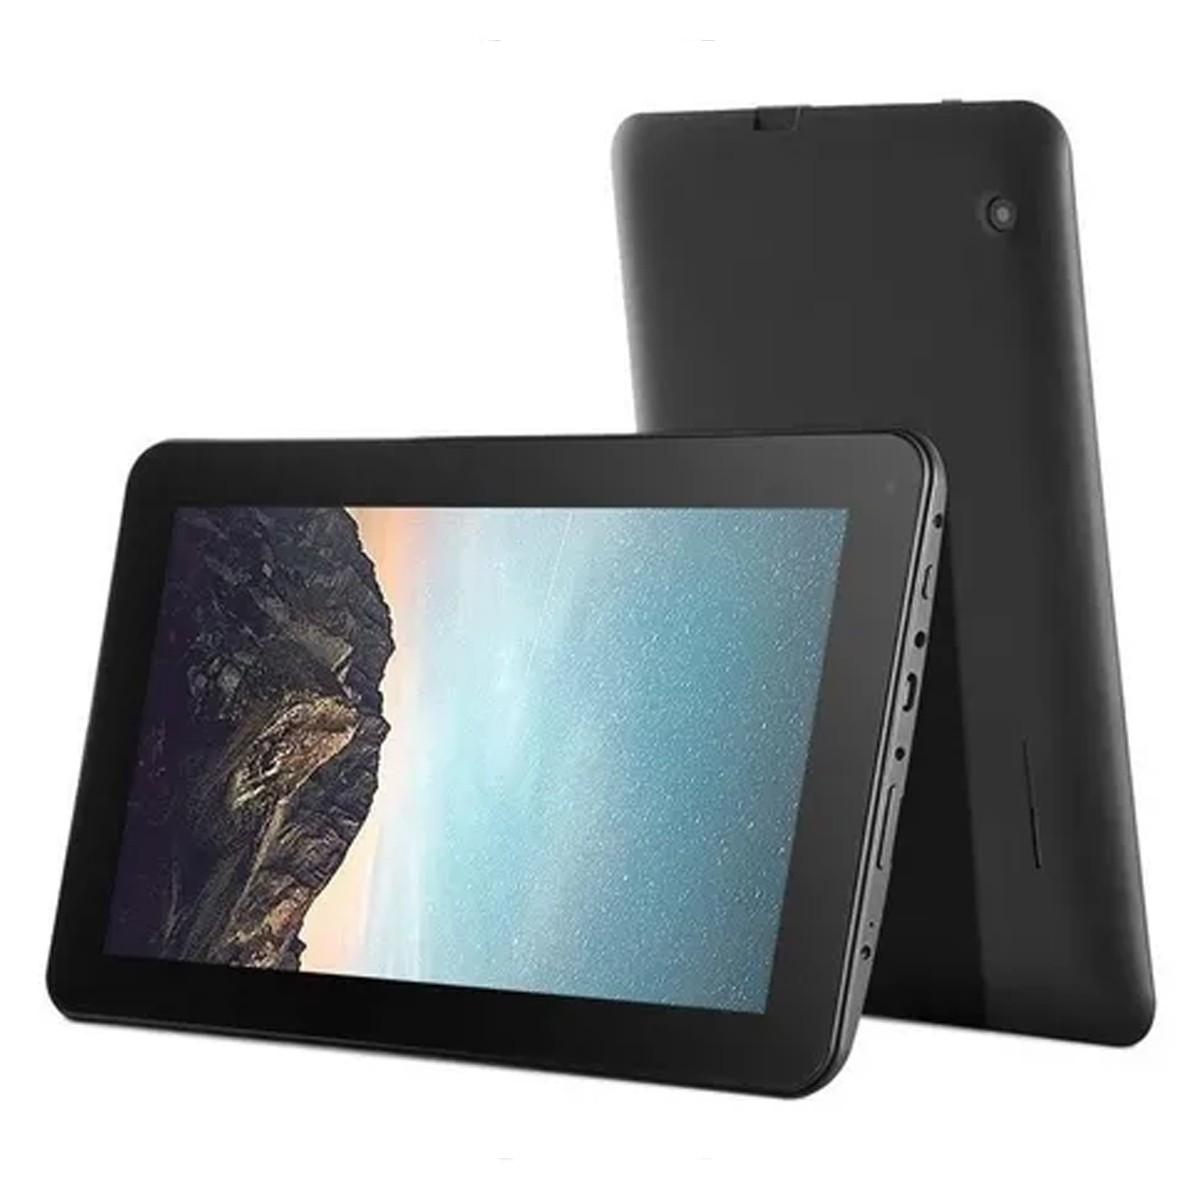 Tablet Multilaser M9s Go NB326 16GB Android 8.1